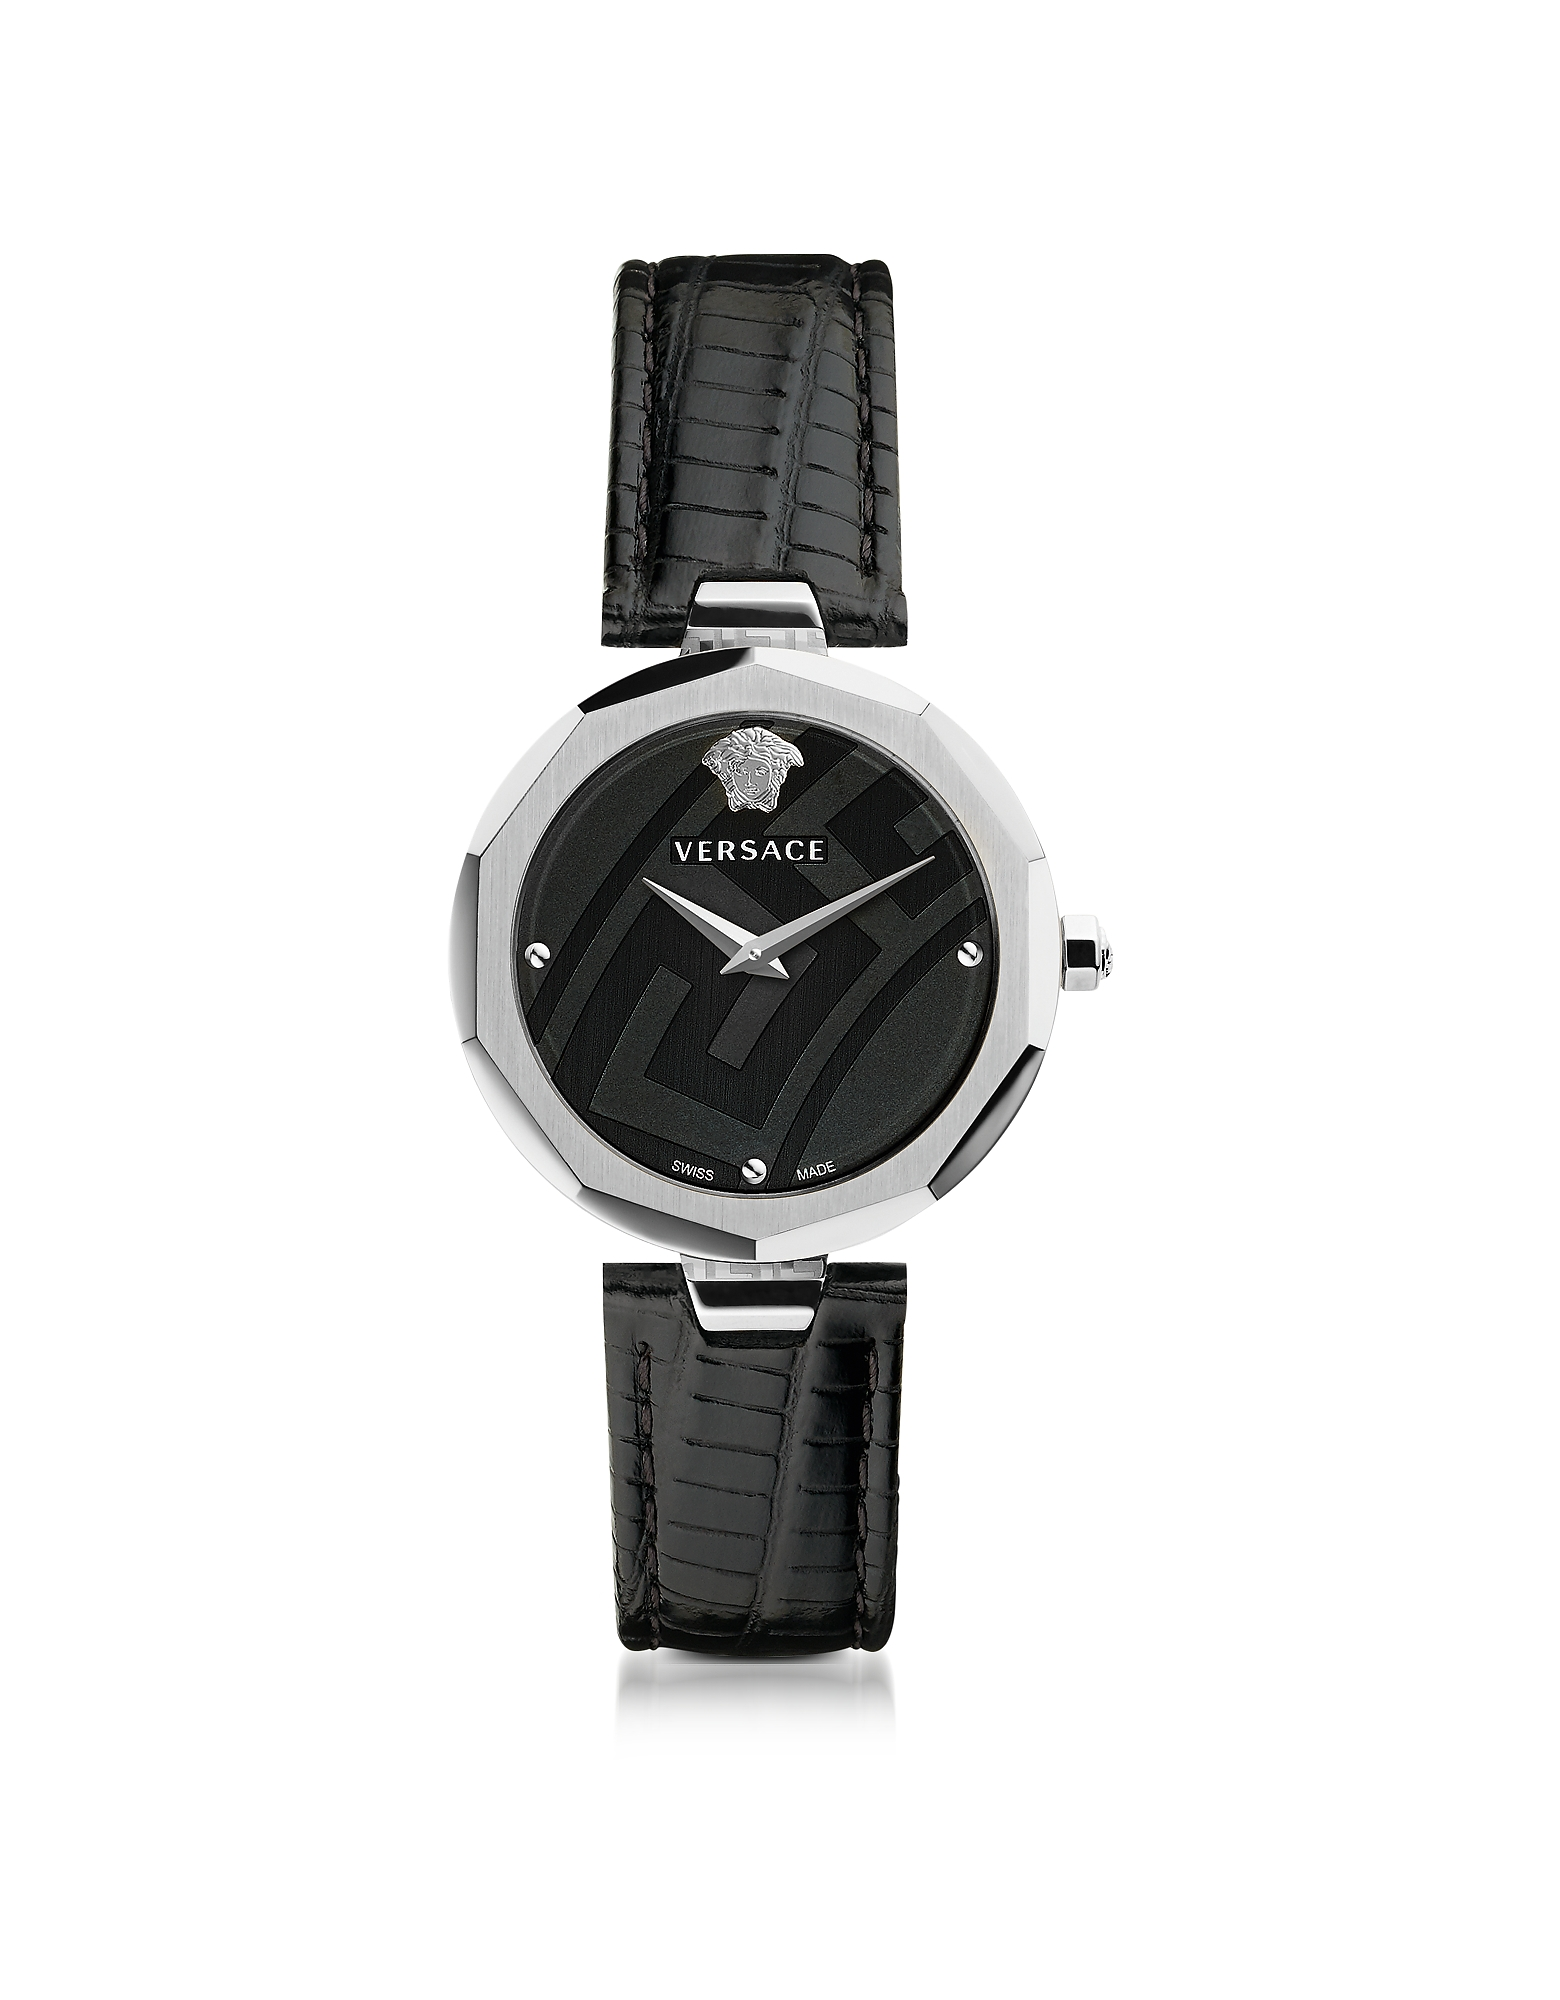 Versace Women's Watches, Idyia Decagonal Black and Silver Women's Watch w/Greek Engraving